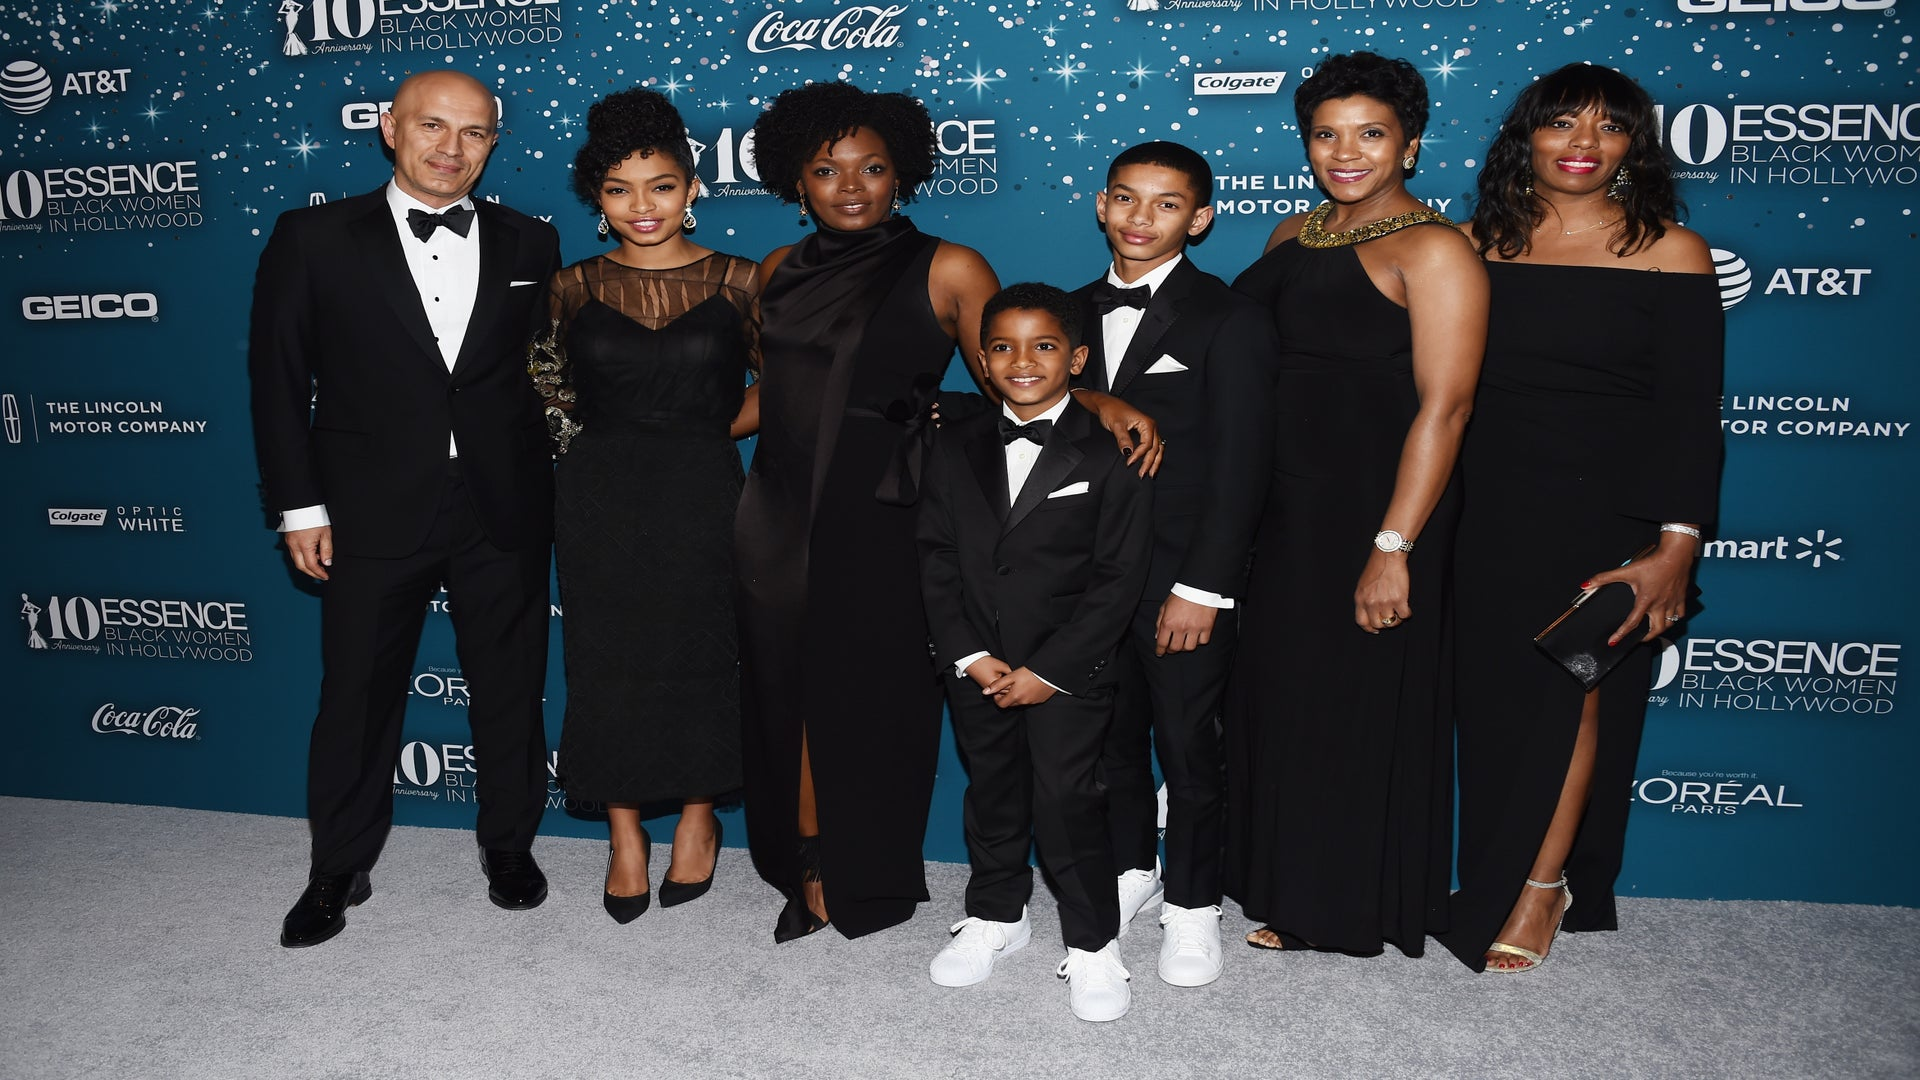 Photo Fab: Yara Shahidi Brings Her Beautiful Family Out for Black Women in Hollywood Awards